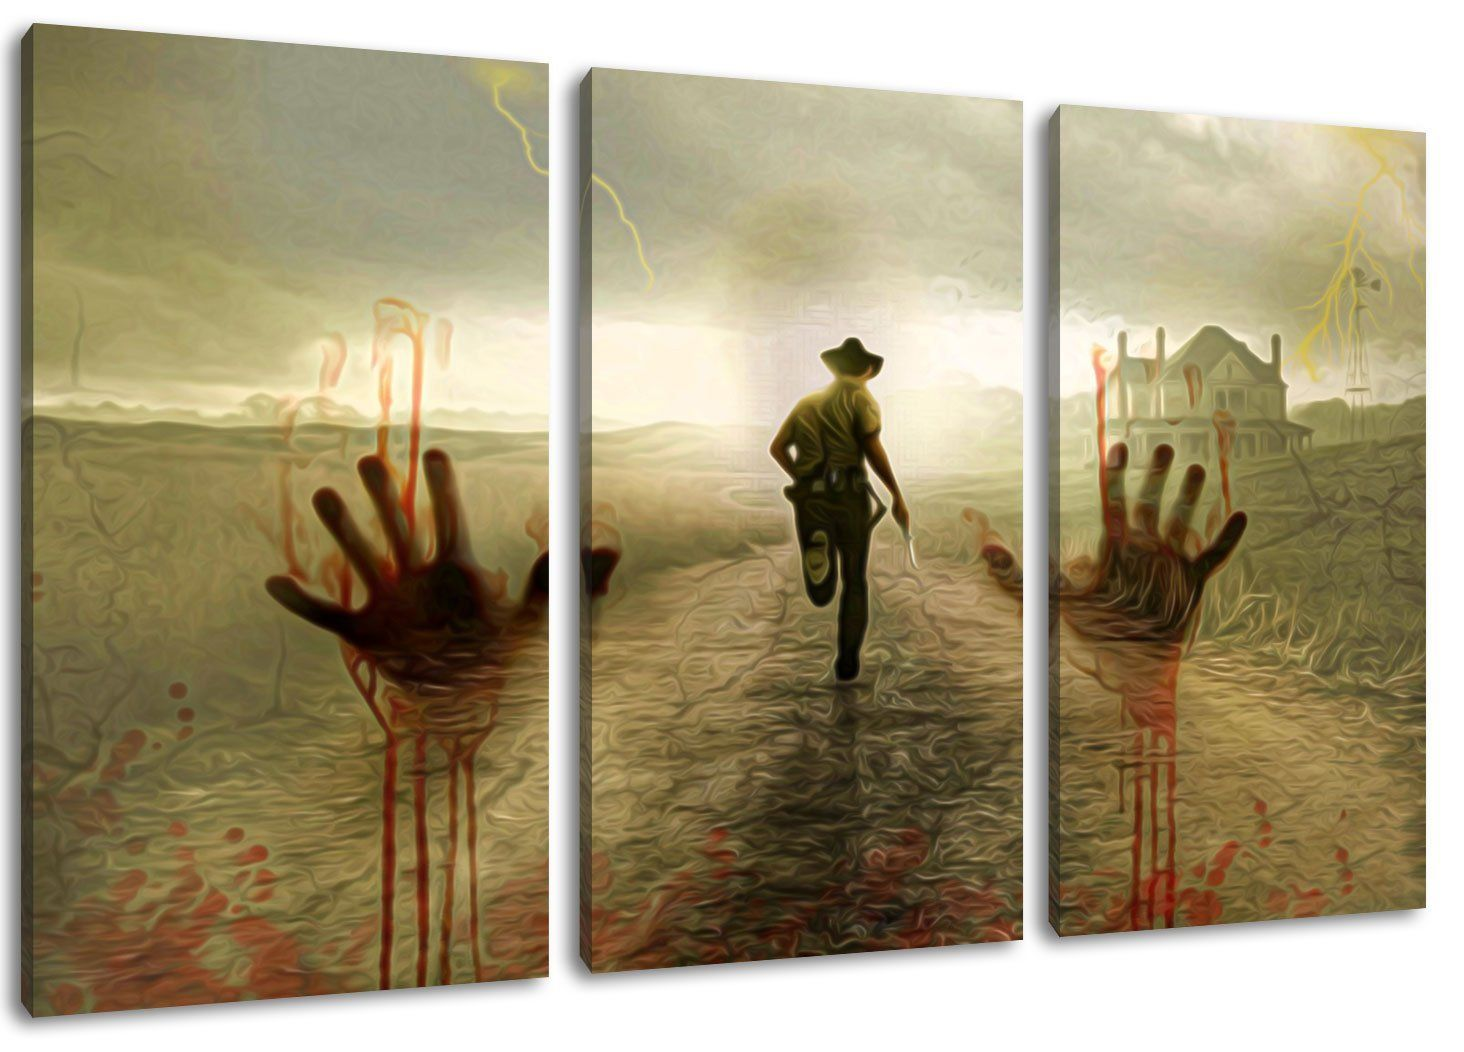 the walking dead motiv 3 teilig auf leinwand gesamtformat 120x80 cm hochwertiger kunstdruck. Black Bedroom Furniture Sets. Home Design Ideas